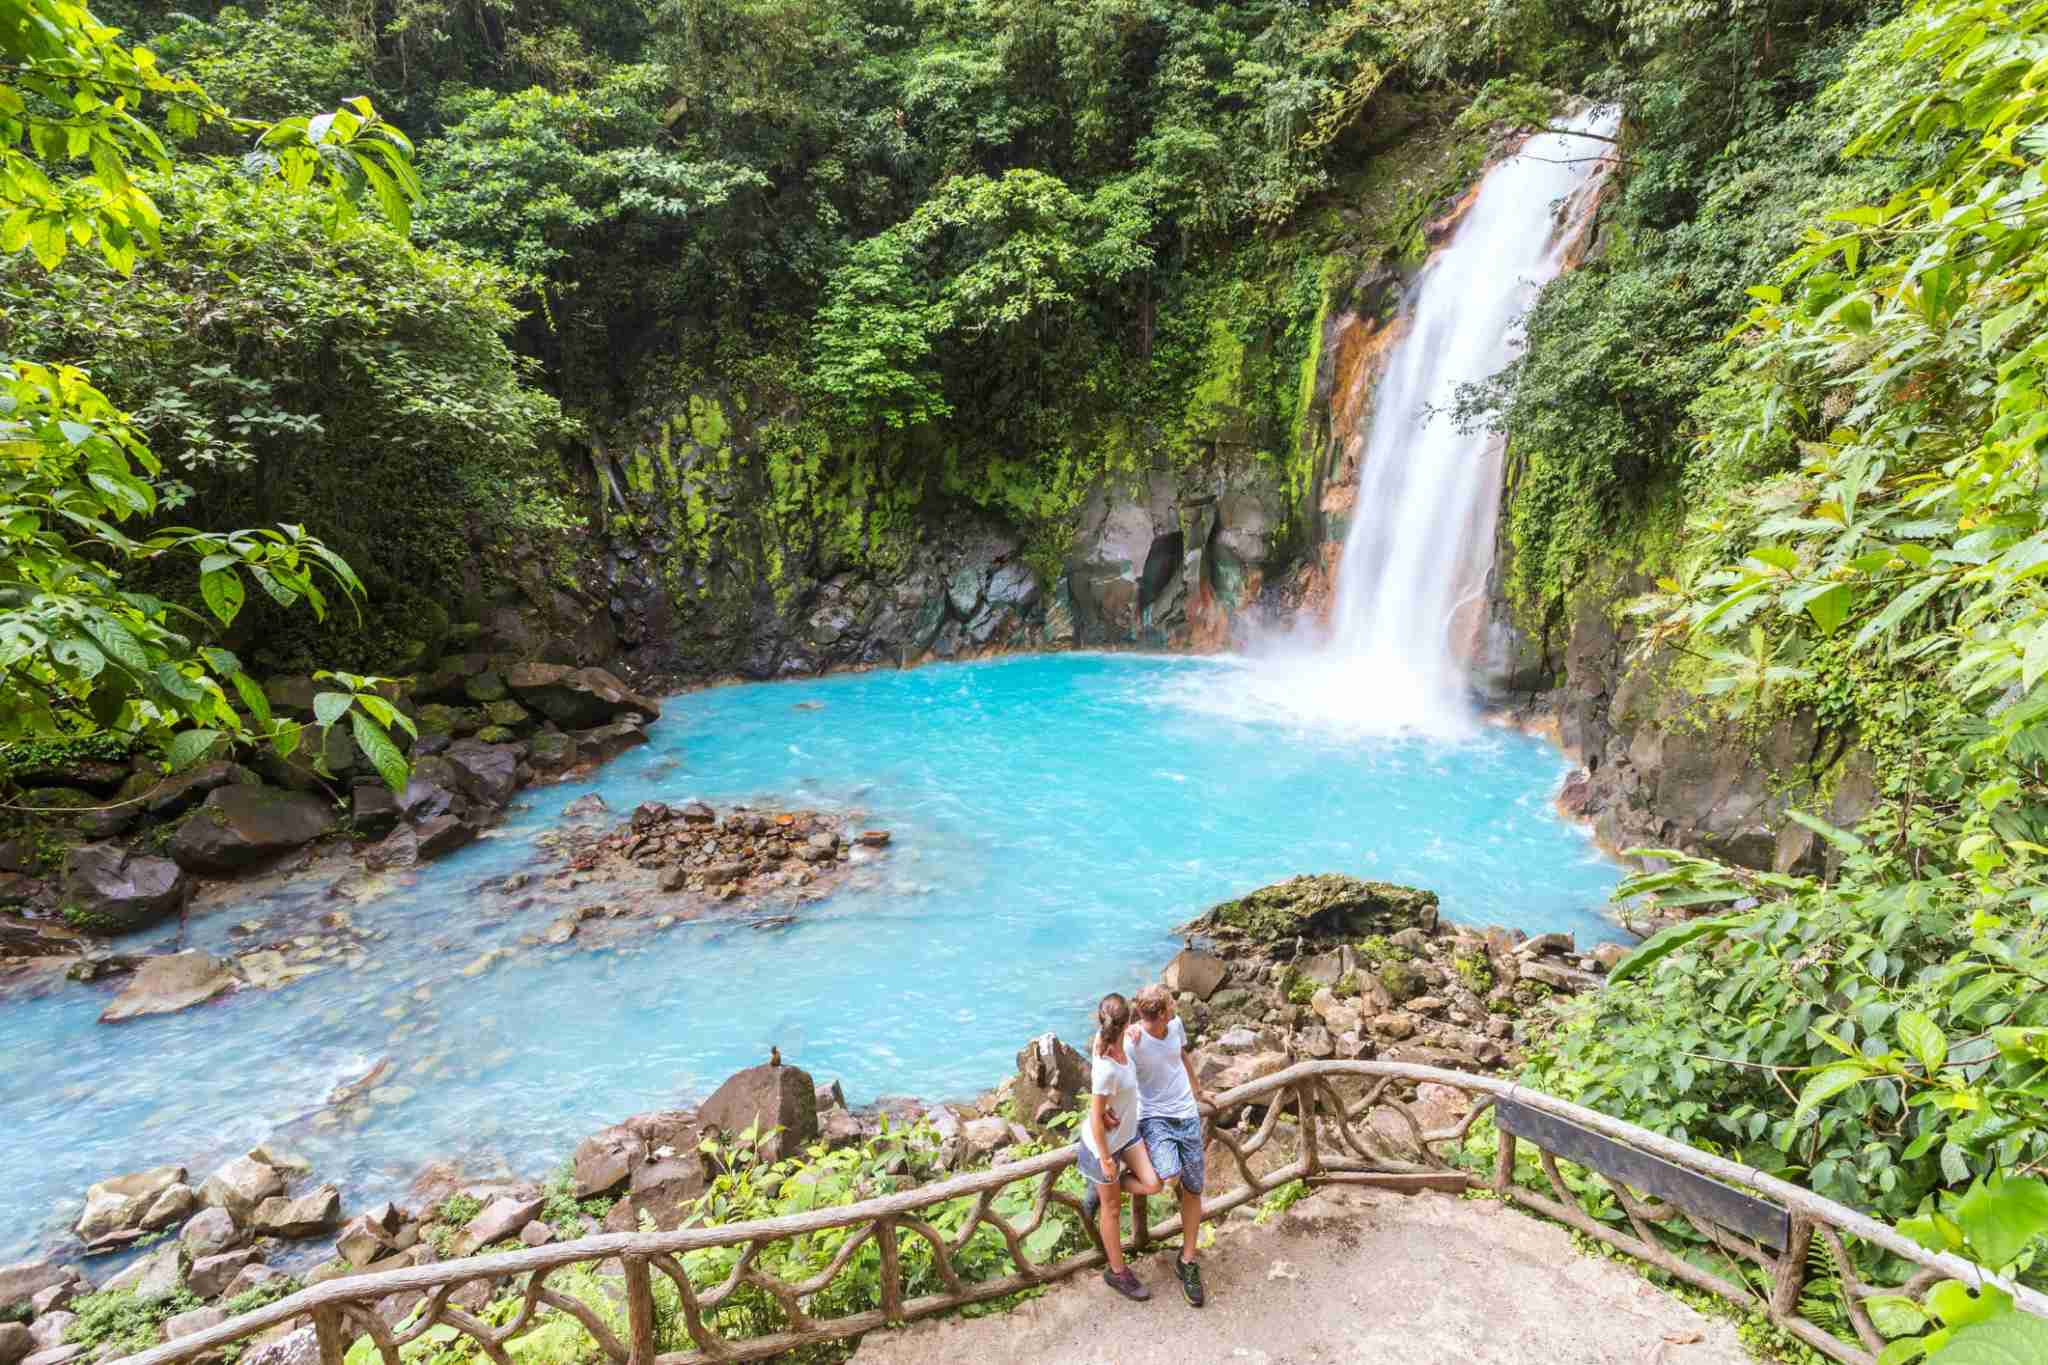 Tourist couple looking at Rio Celeste waterfall, Tenorio Volcano National Park, Guanacaste, Costa Rica Getty Images